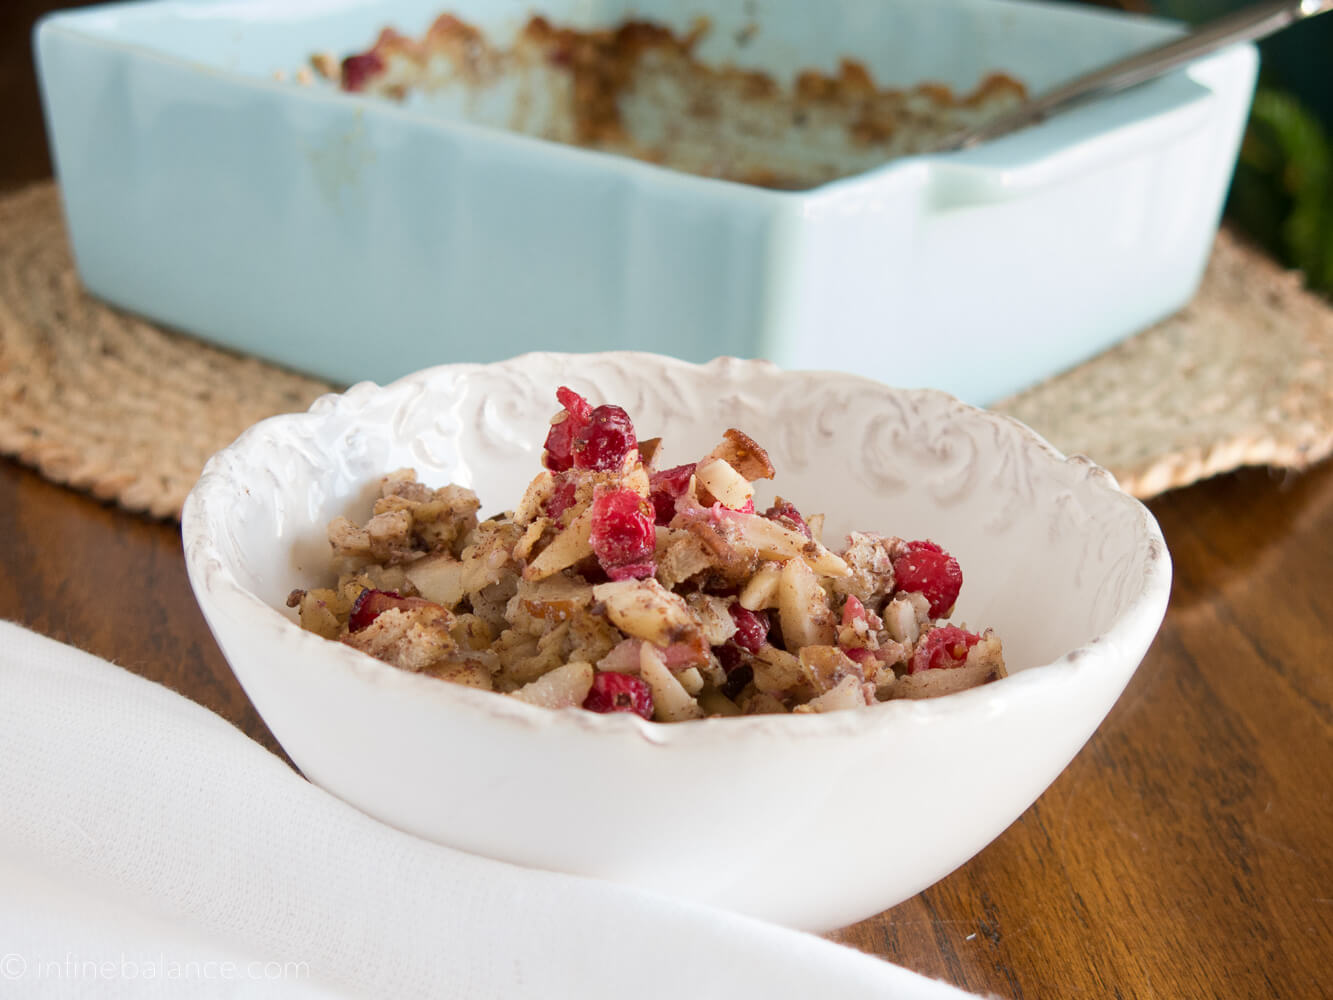 Cranberry and Pear Baked Oatmeal